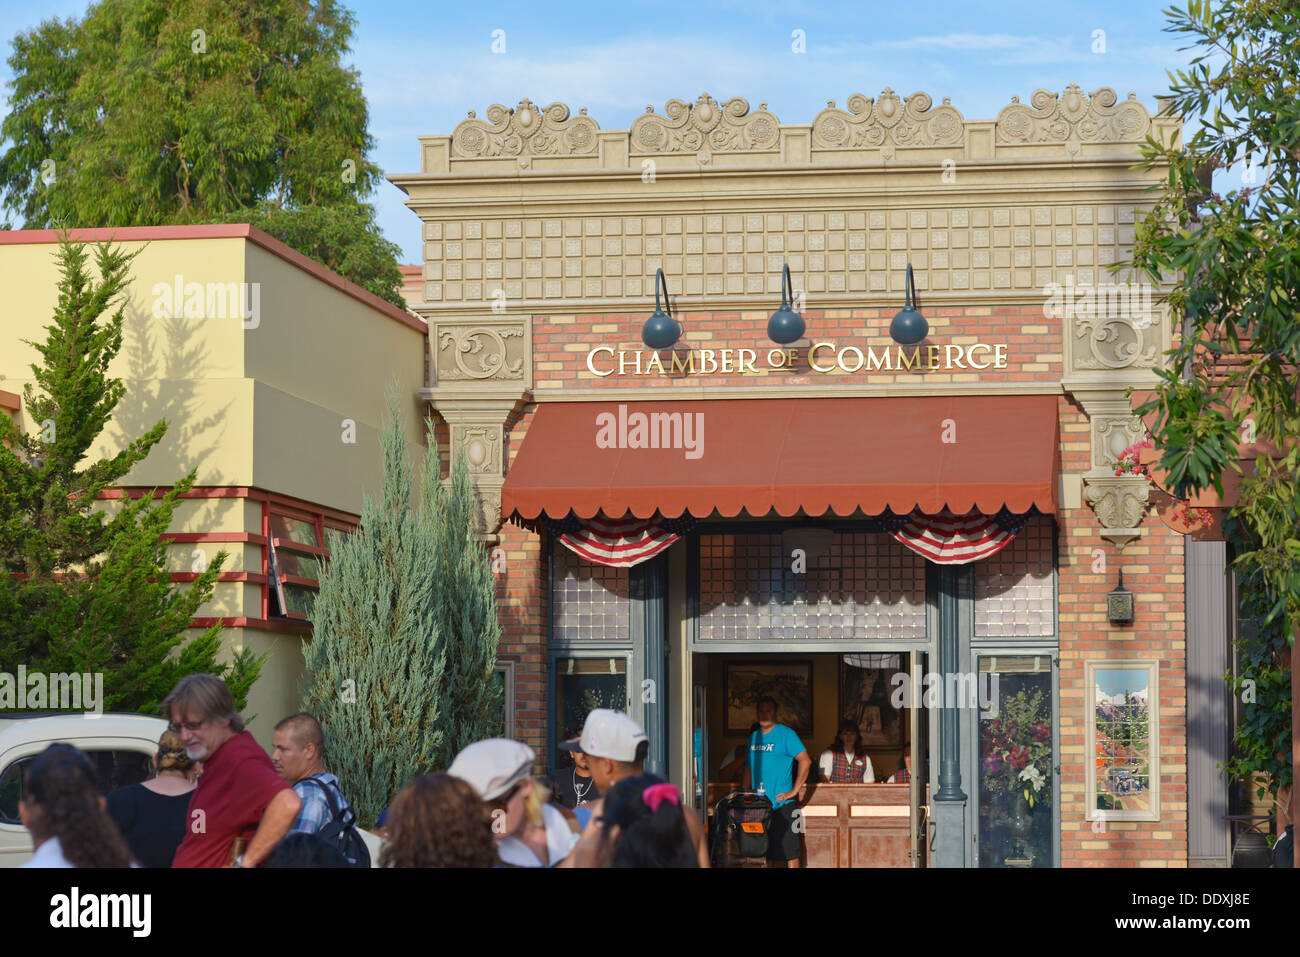 Chambre de Commerce, sur Buena Vista Street, Disneyland, California Adventure Park, Anaheim, Californie Photo Stock